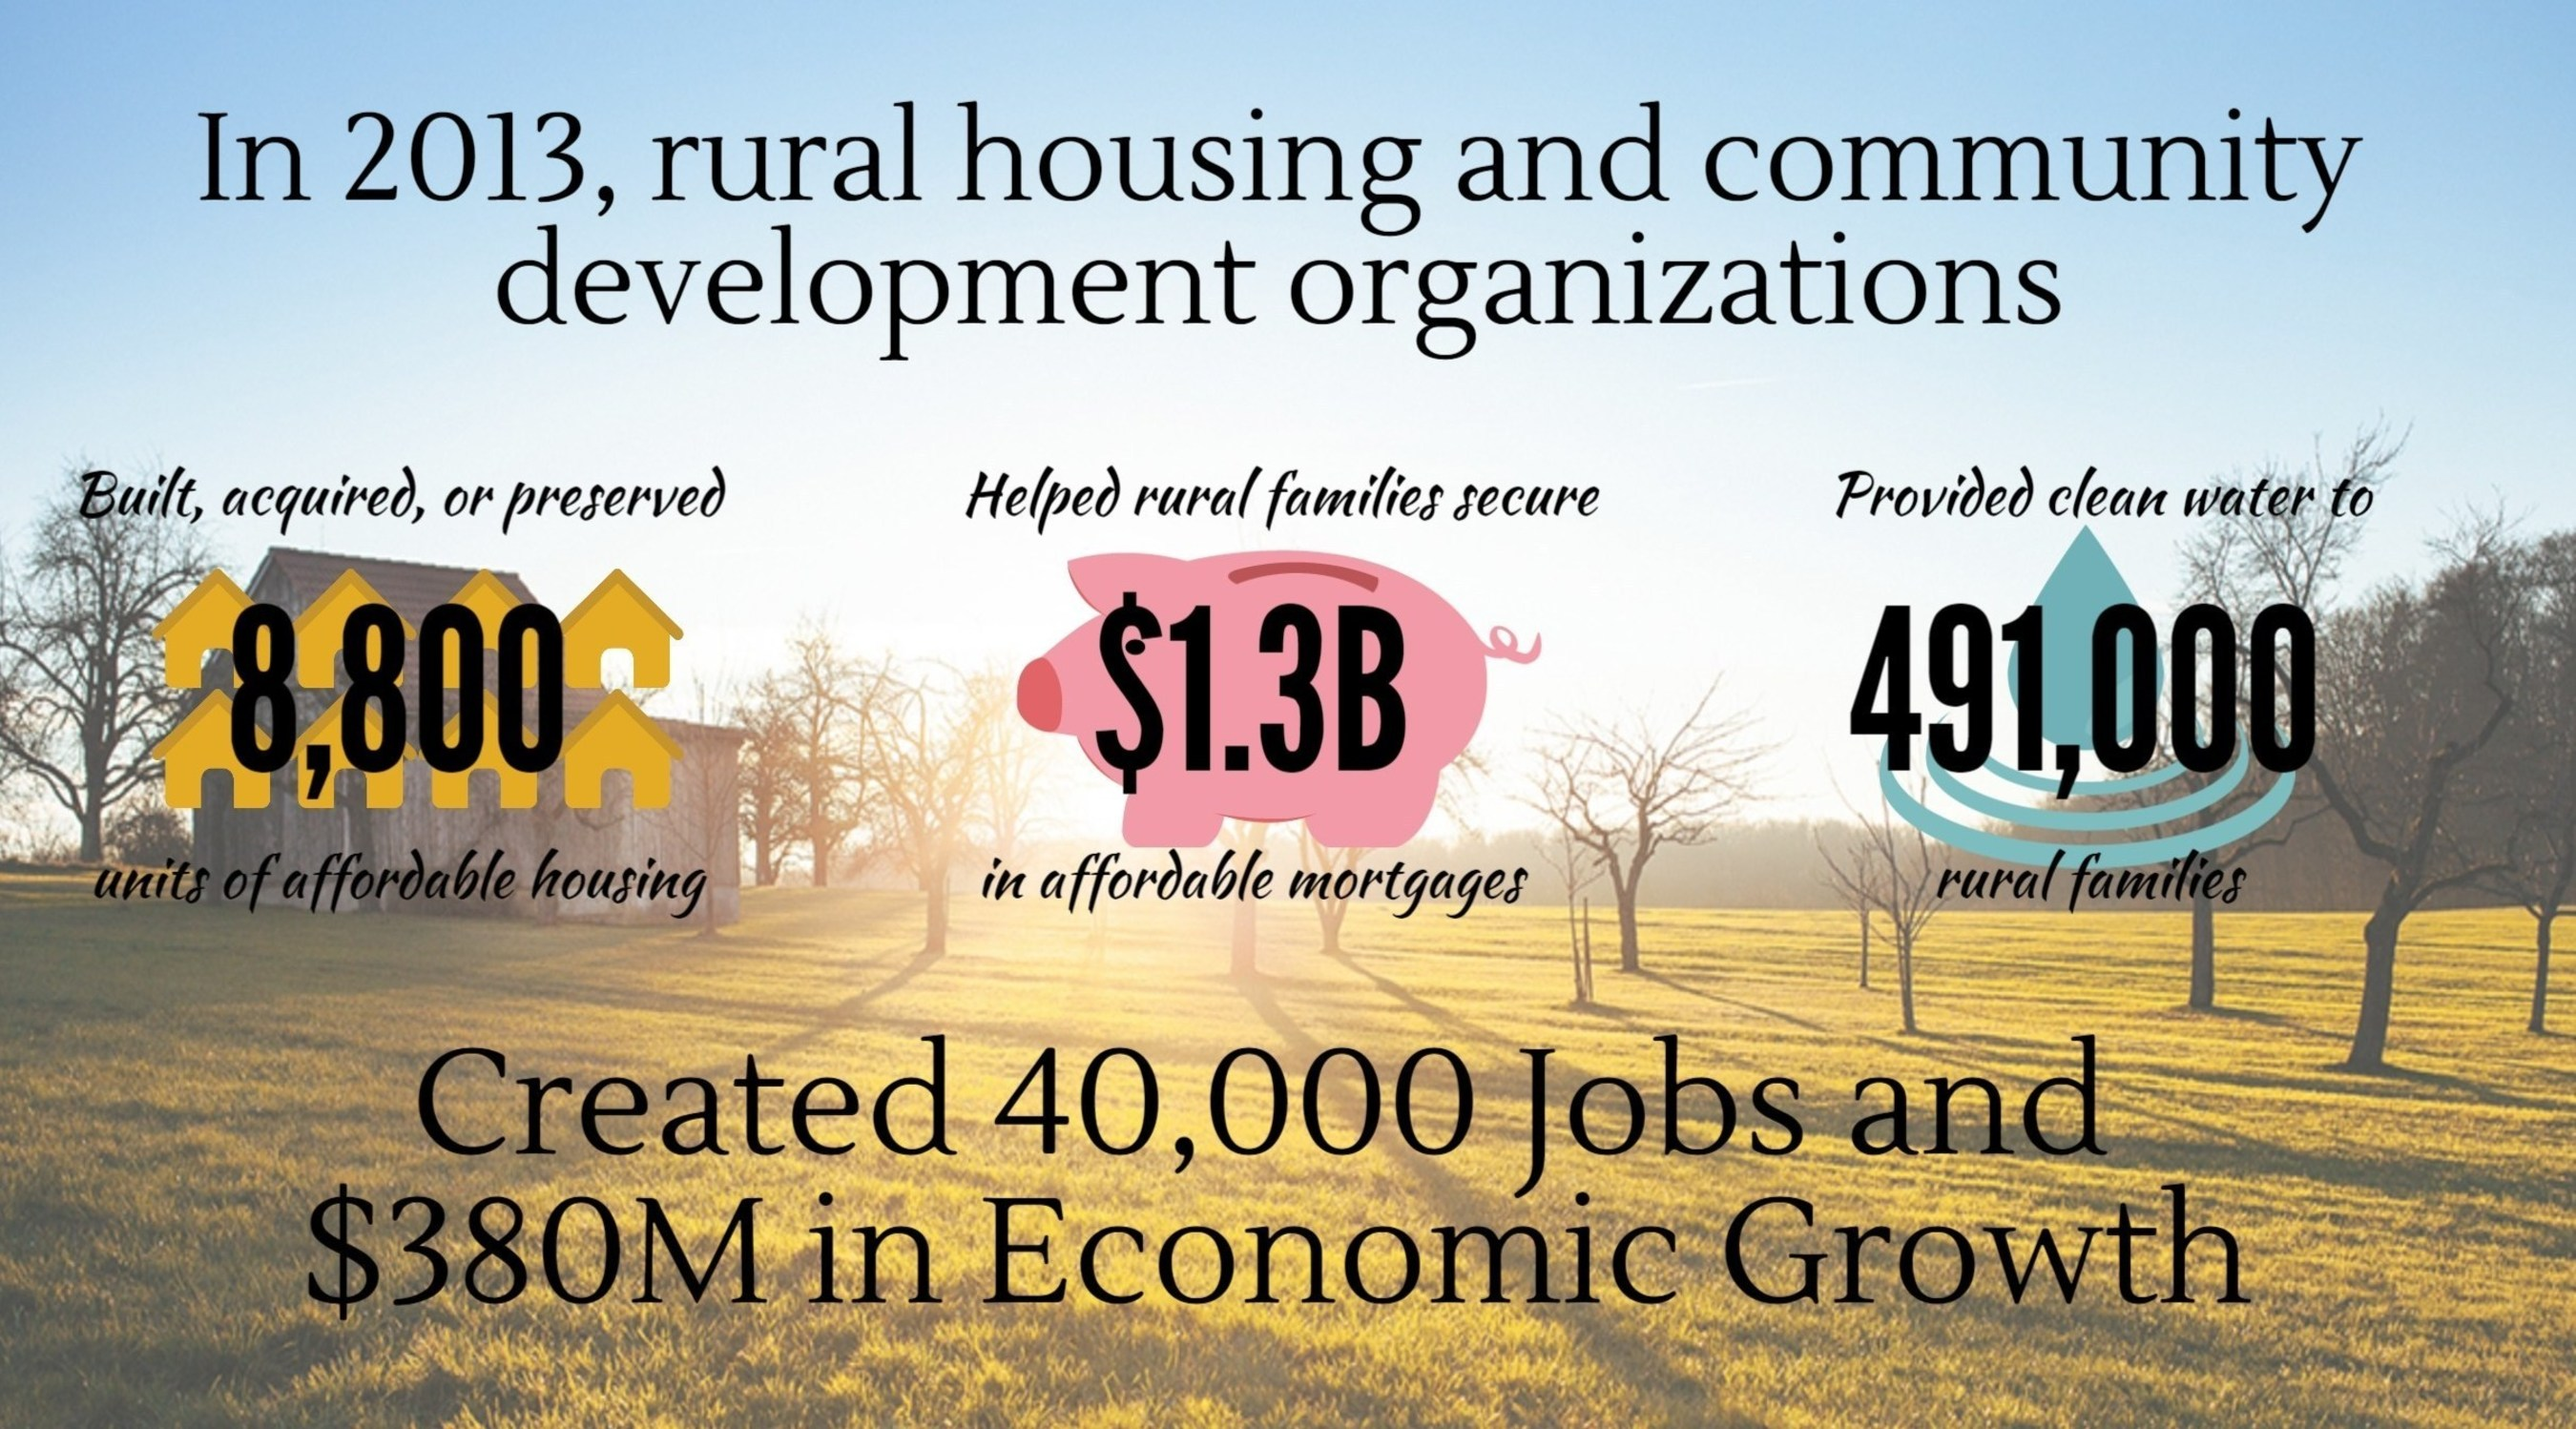 Rural housing and community development organizations create jobs and economic growth